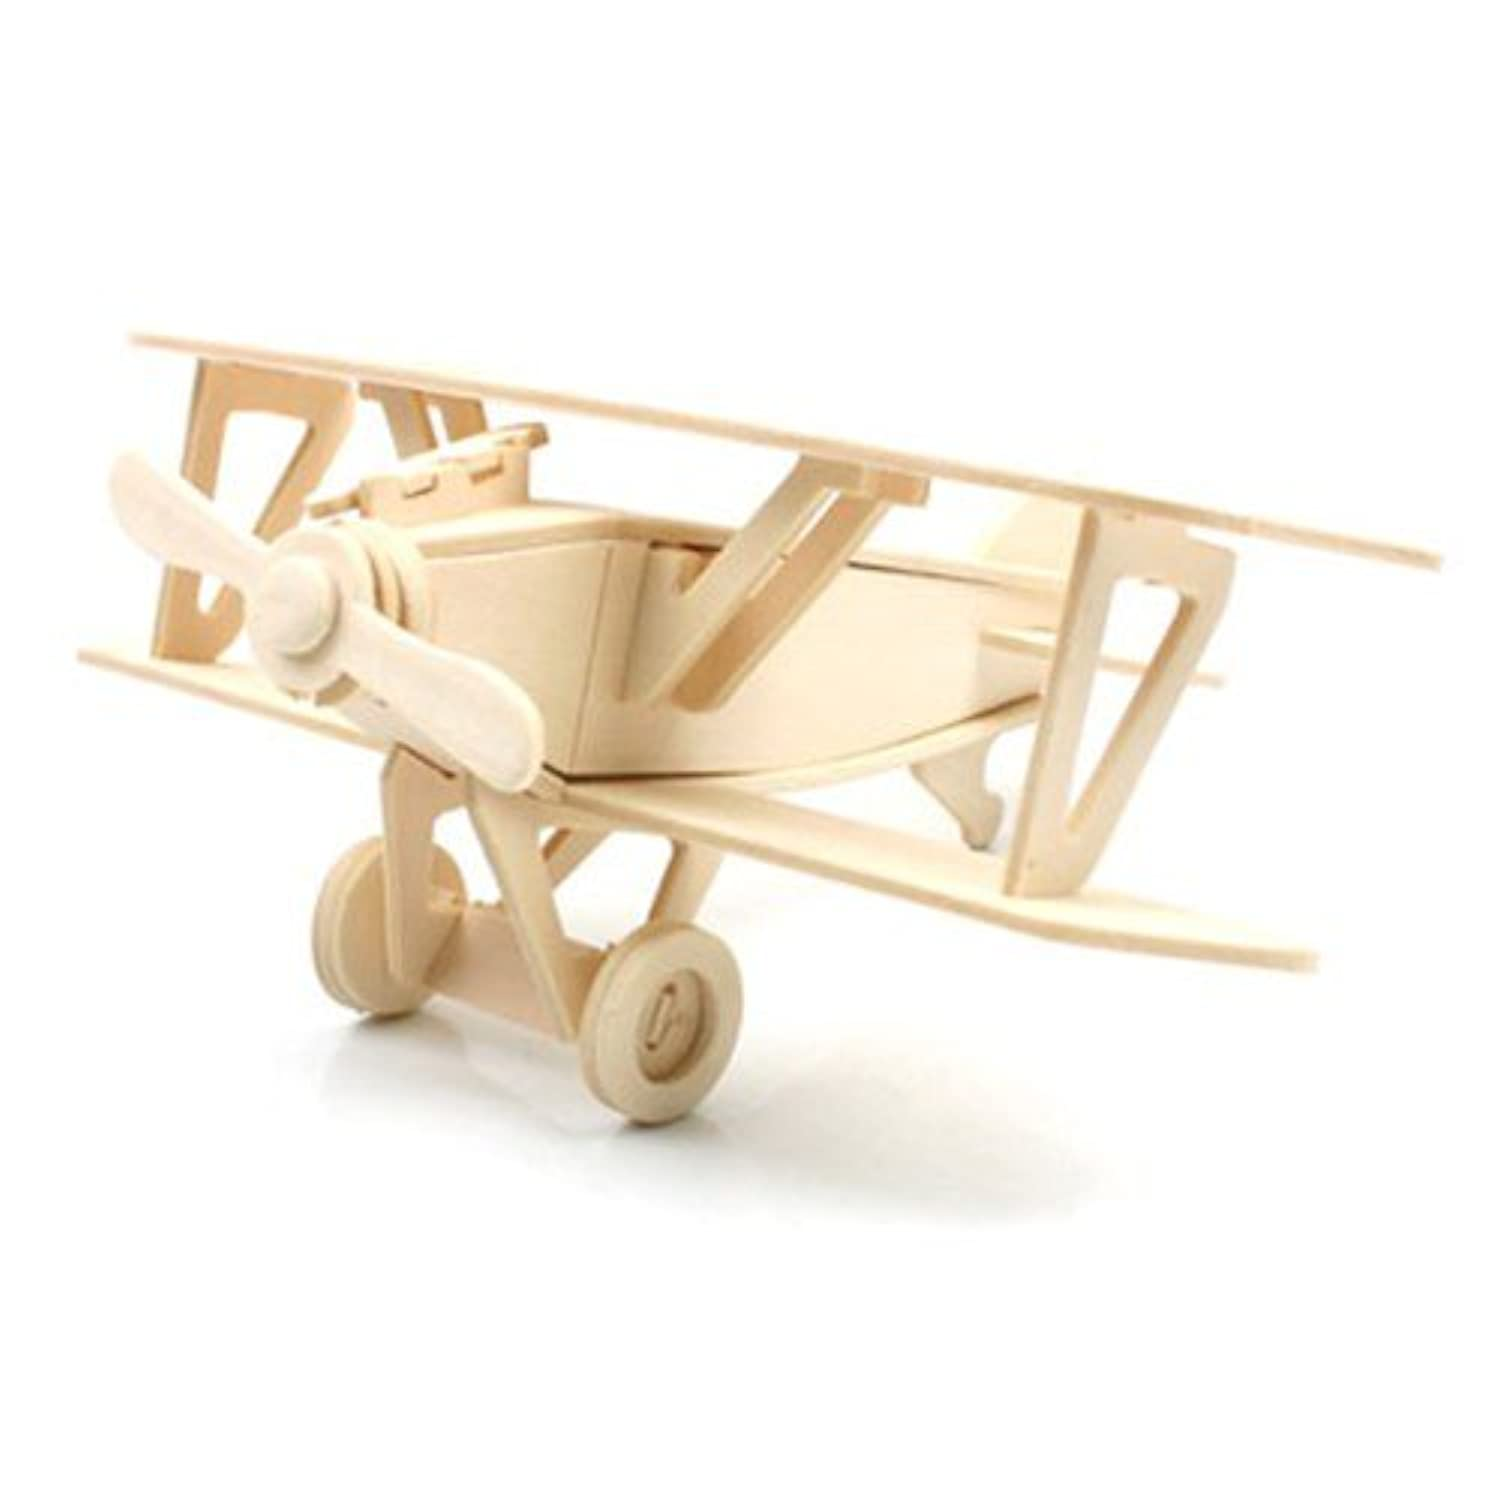 Wood Craft automobile - Neo-port 17